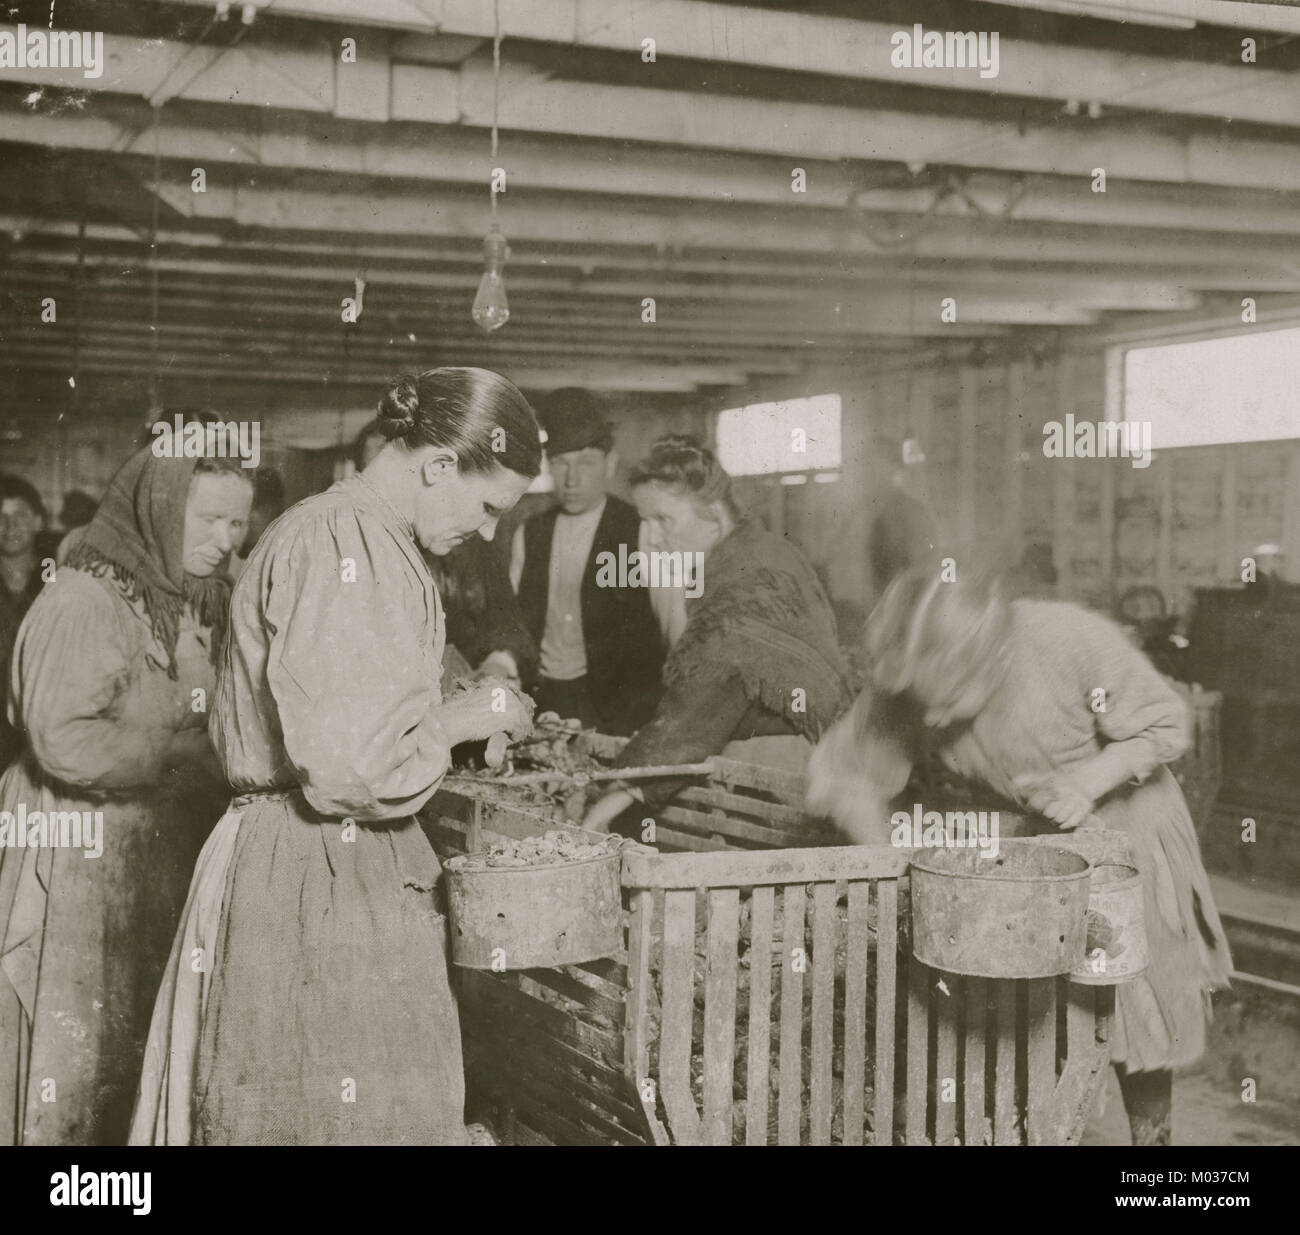 Eight Year Old Lizzie Earns 30 Cents A Day Shucking Oysters In The Dunbar Cannery